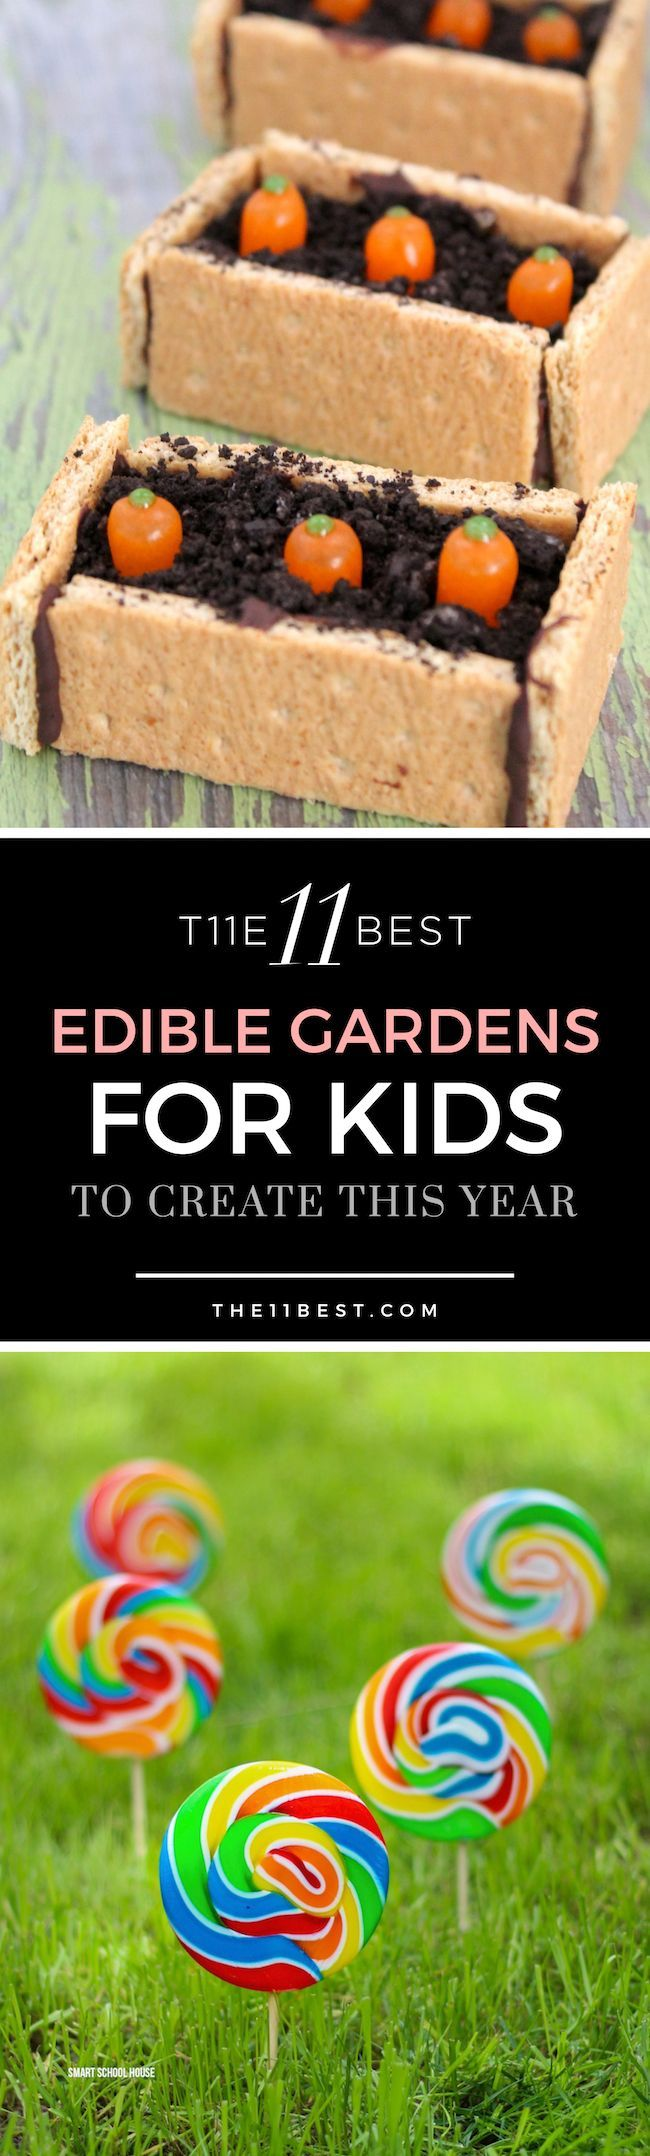 Garden ideas for kids. Candy garden. Edible garden. Garden crafts for kids.